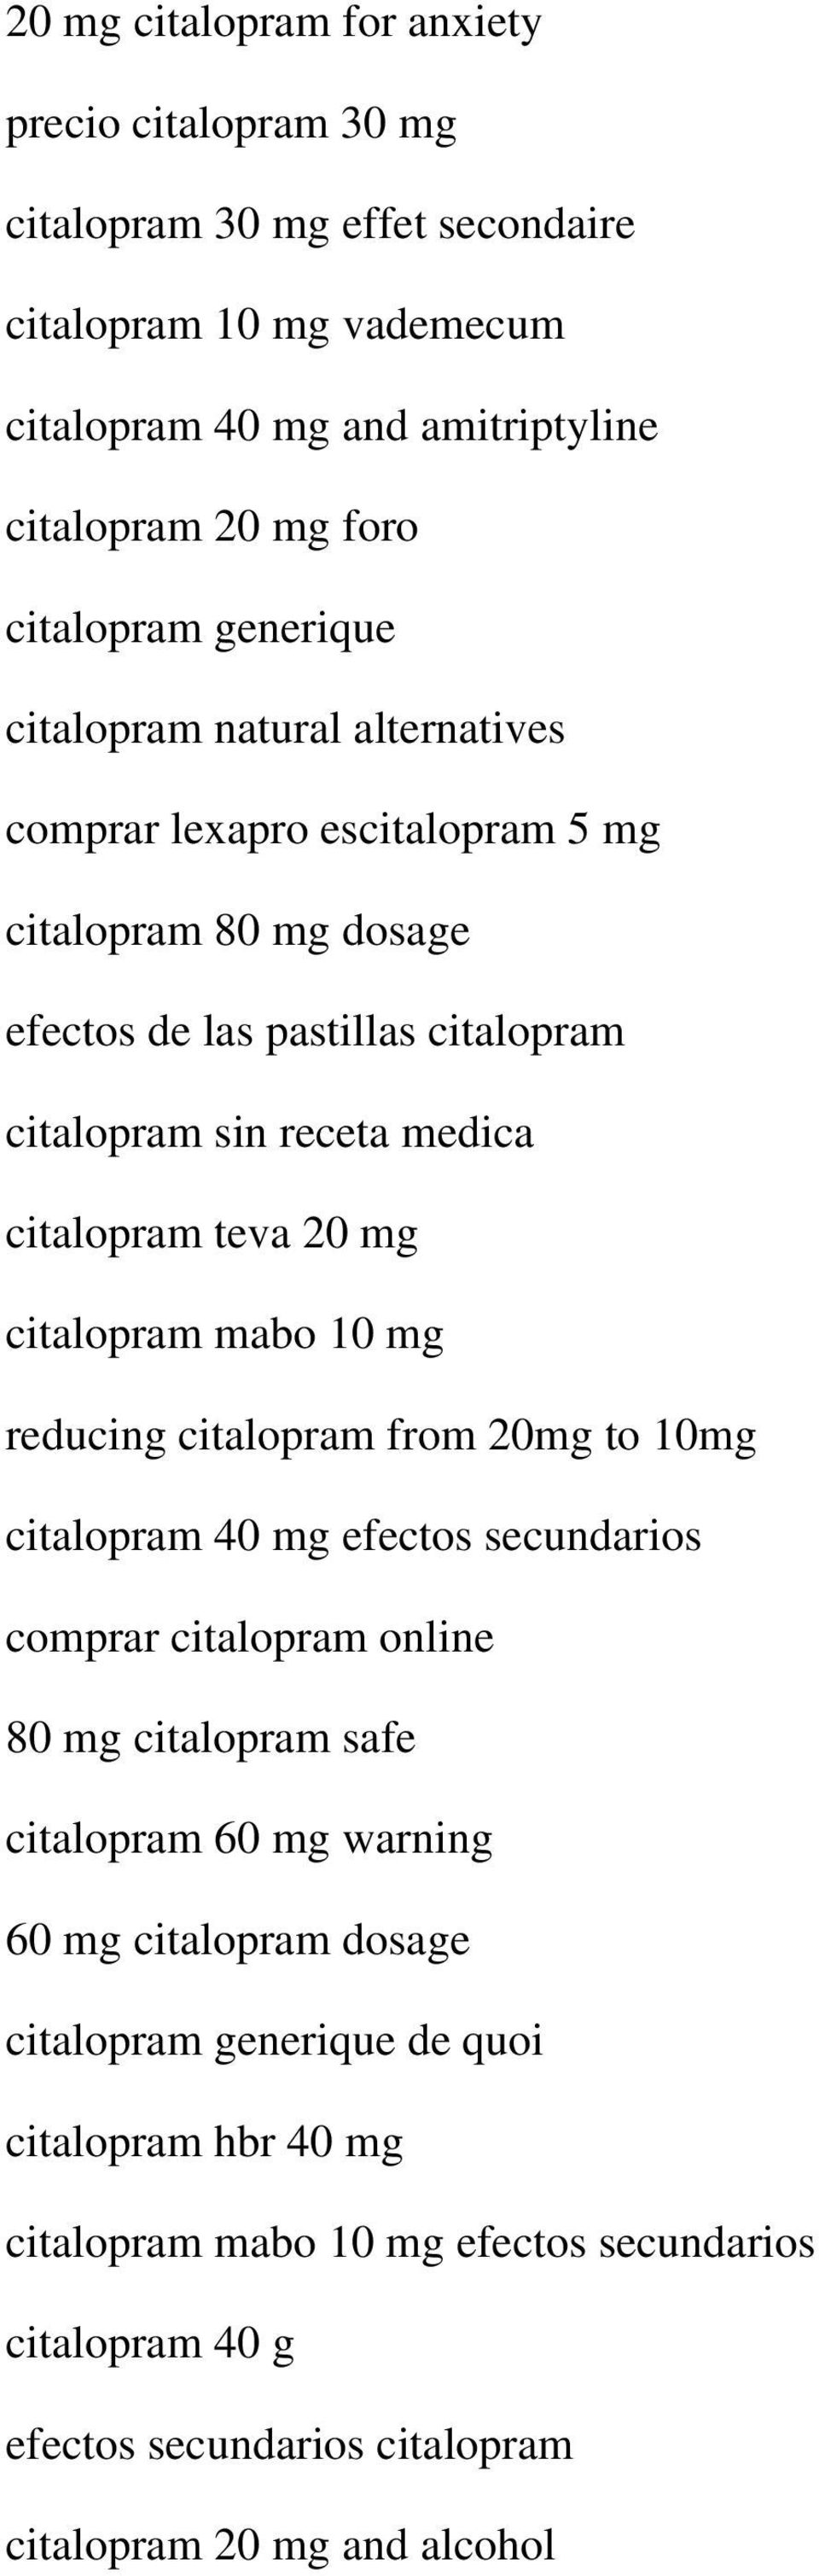 20 mg citalopram mabo 10 mg reducing citalopram from 20mg to 10mg citalopram 40 mg efectos secundarios comprar citalopram online 80 mg citalopram safe citalopram 60 mg warning 60 mg